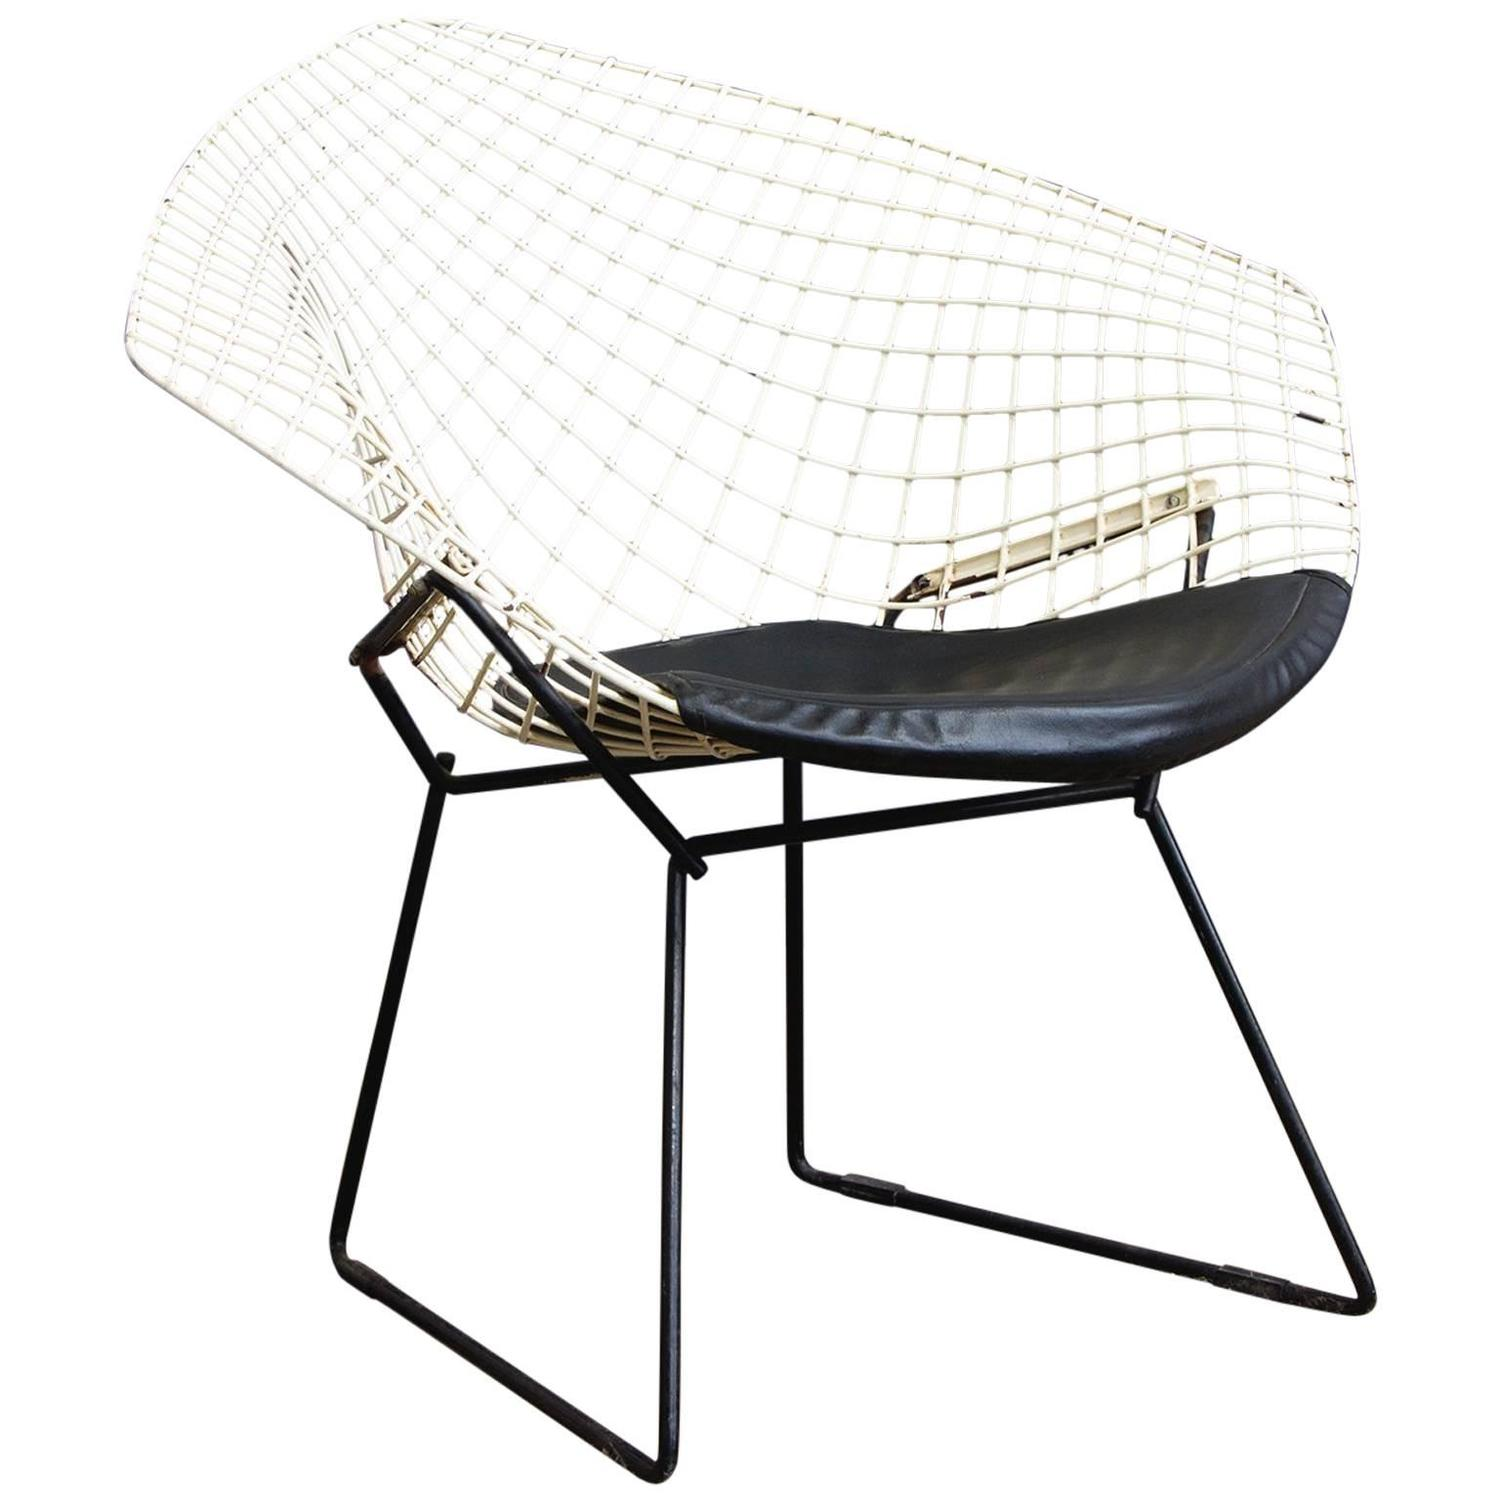 1952 Harrie Bertoia Diamond Chair 421 Black and White with